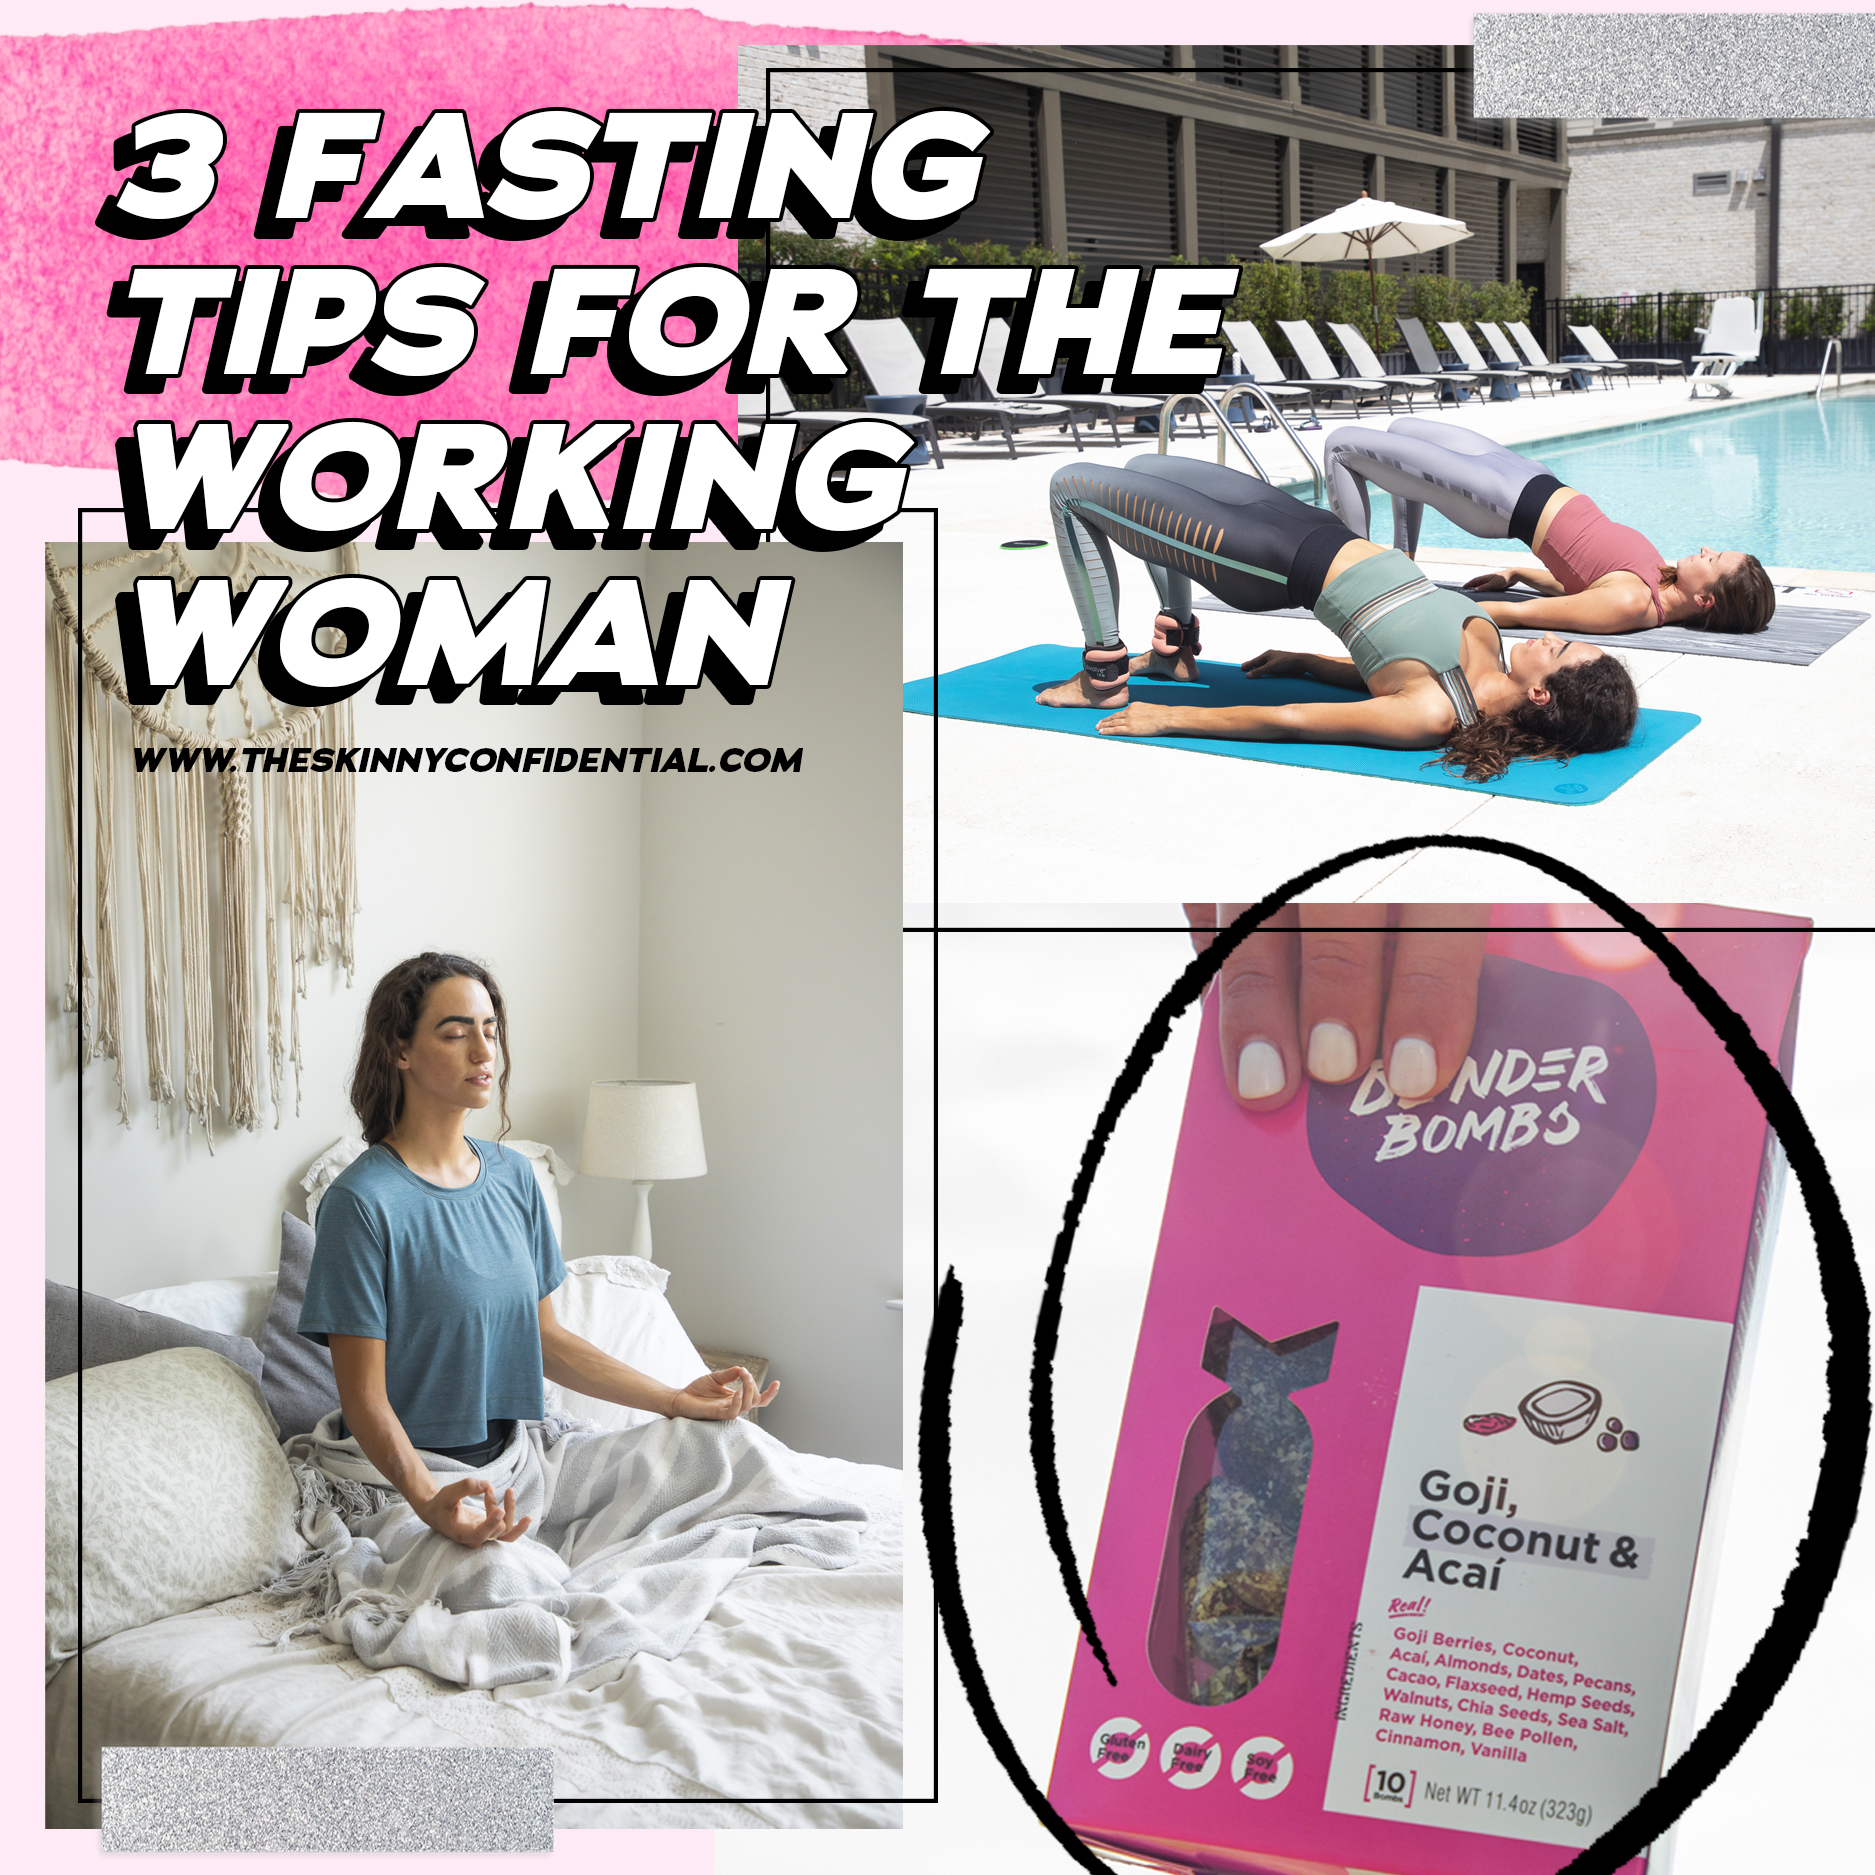 3 Fasting Tips For The Working Woman and Smoothie Recipes to Help You Break a Fast